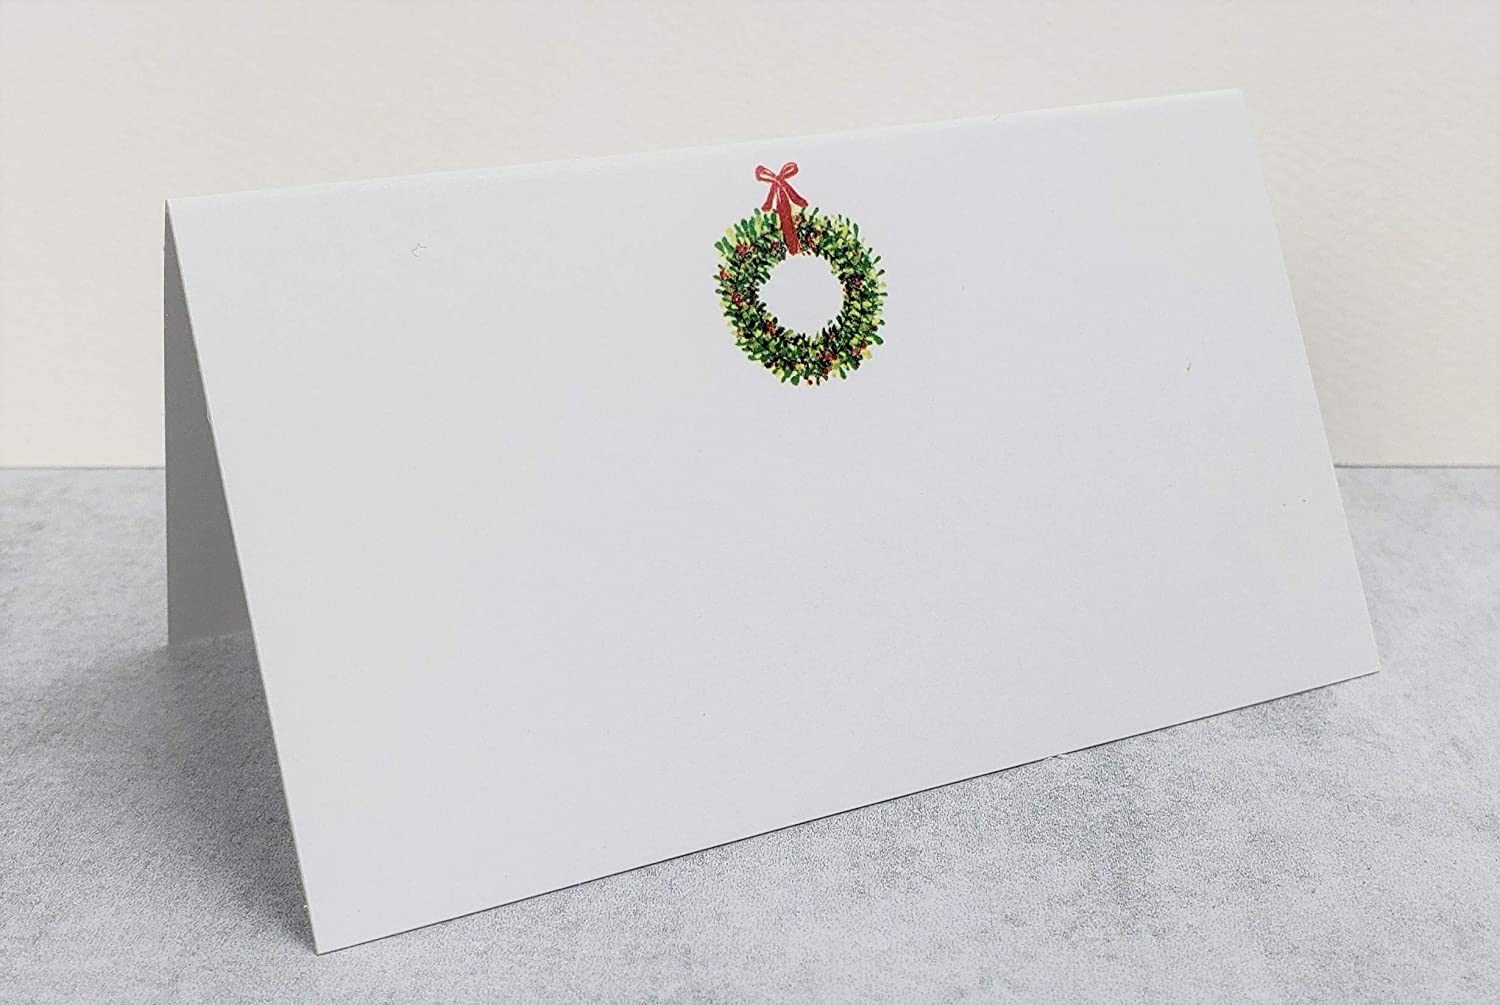 Nancy Nikko Place Cards with Christmas Wreath for Weddings Parties and Special Events Table Tent Style 12 Scored for Easy Folding Pkgs of 12//25 // 50 Dinners Showers